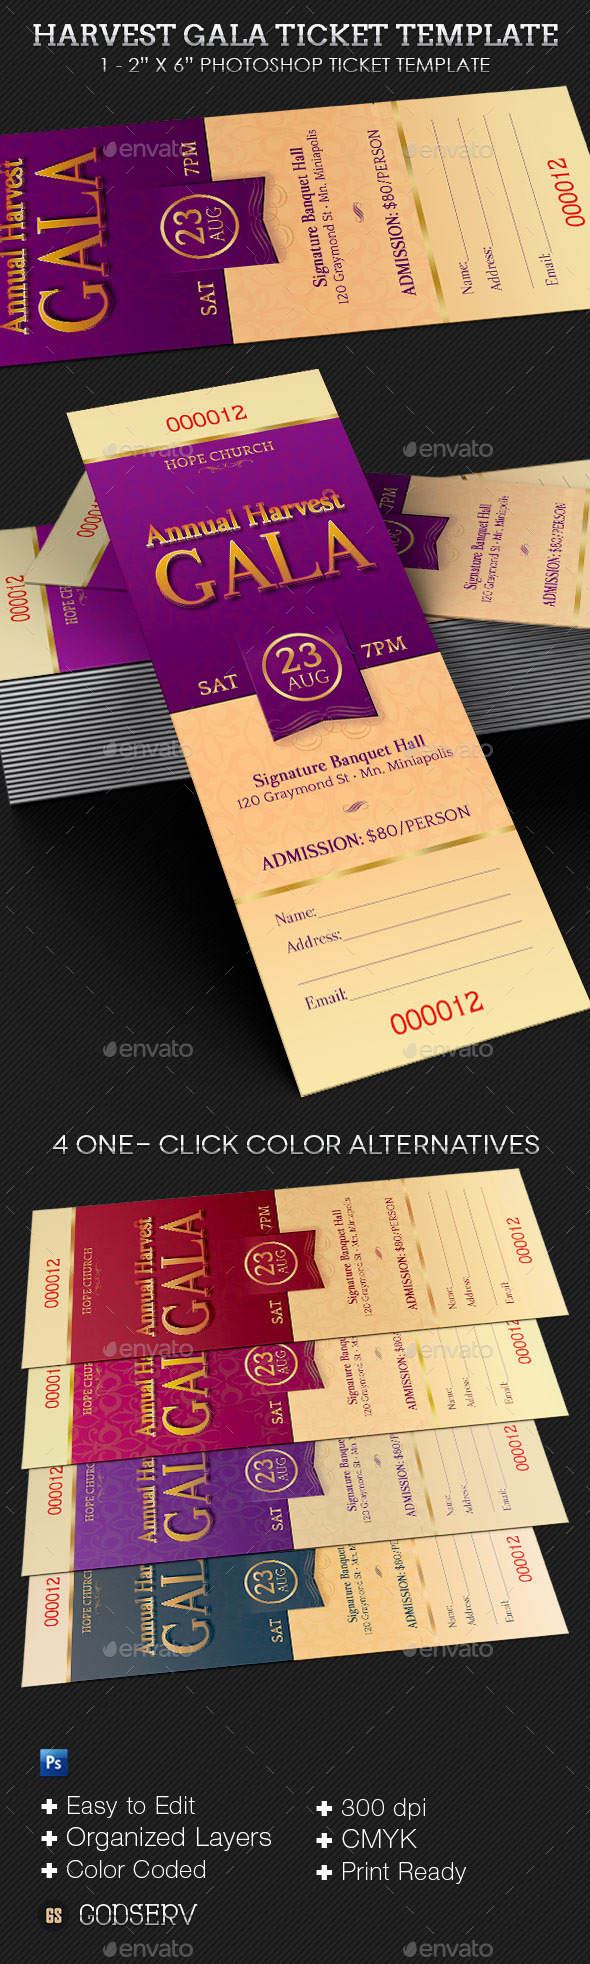 Harvest Gala Ticket Template - Miscellaneous Print Templates